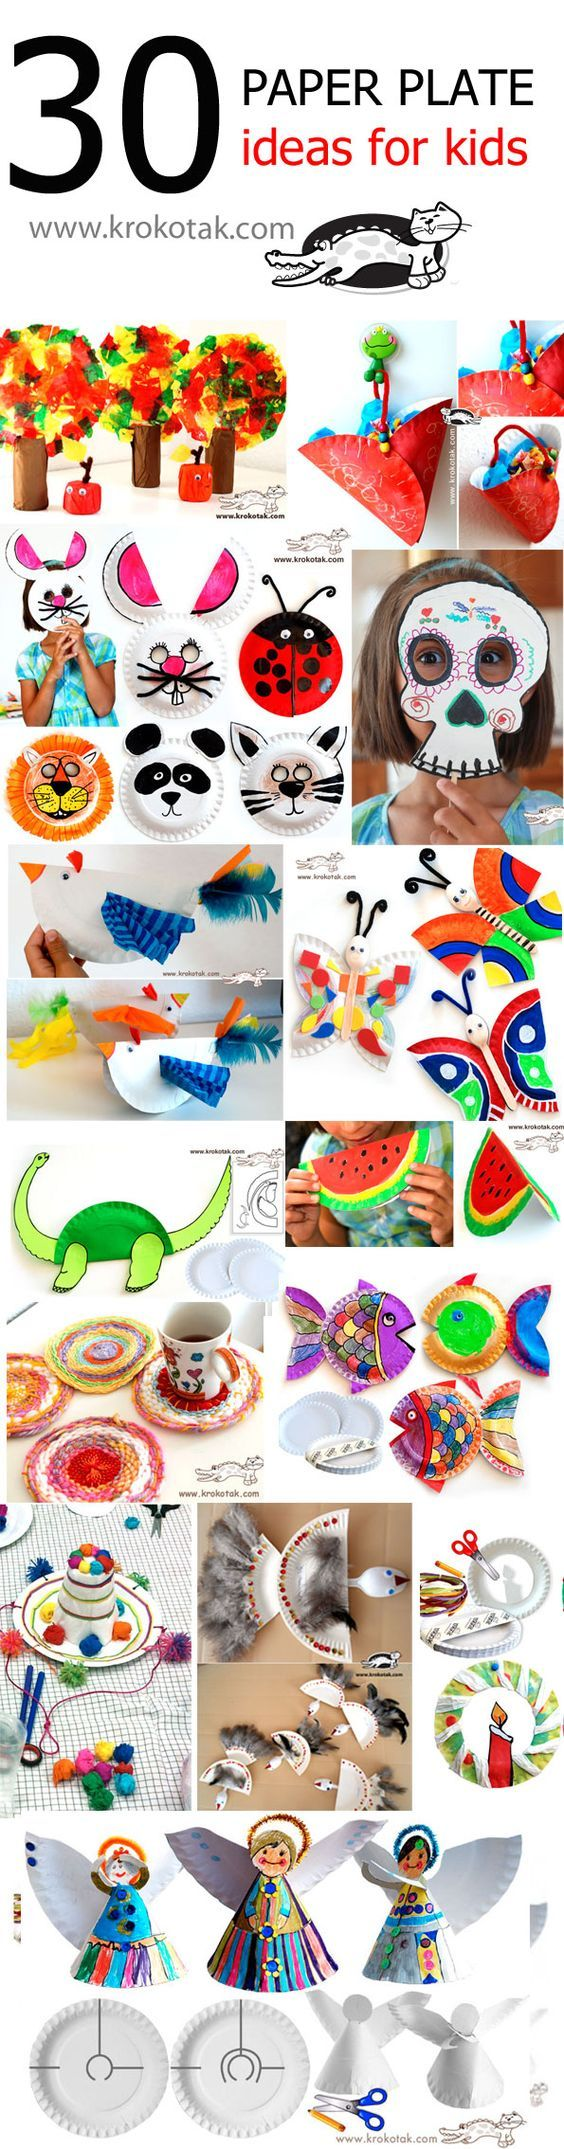 Basteln mit Papier oder Papp - Tellern - 30 tolle und easy Ideen *** PAPER PLATE Ideas for kids - easy to do and lots of fun